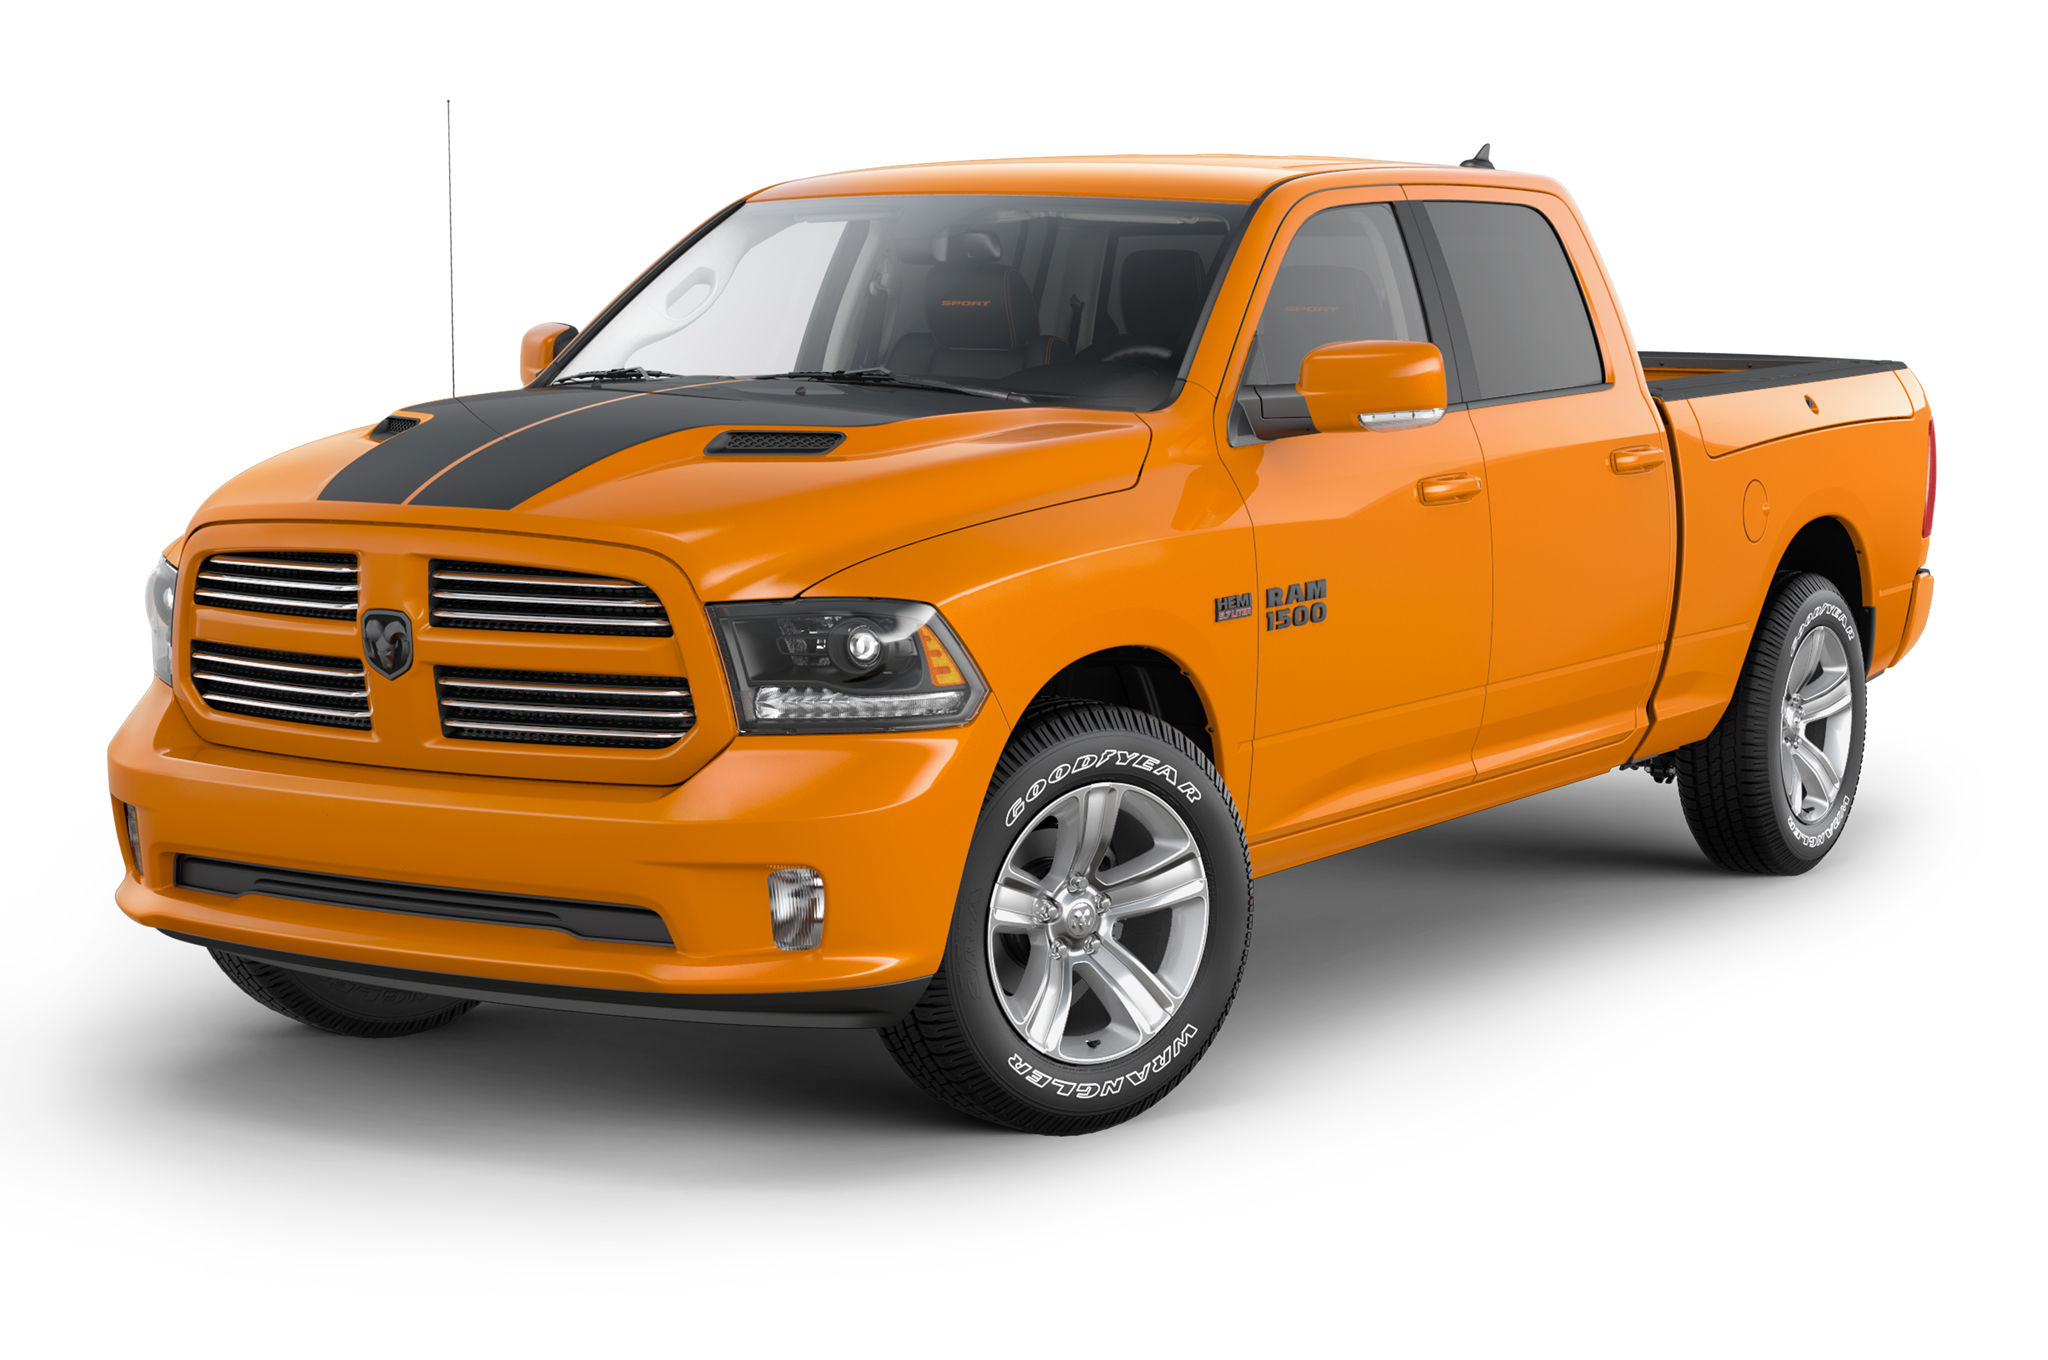 2015 ram 1500 ignition orange sport black sport editions limited to 1 000 units each. Black Bedroom Furniture Sets. Home Design Ideas